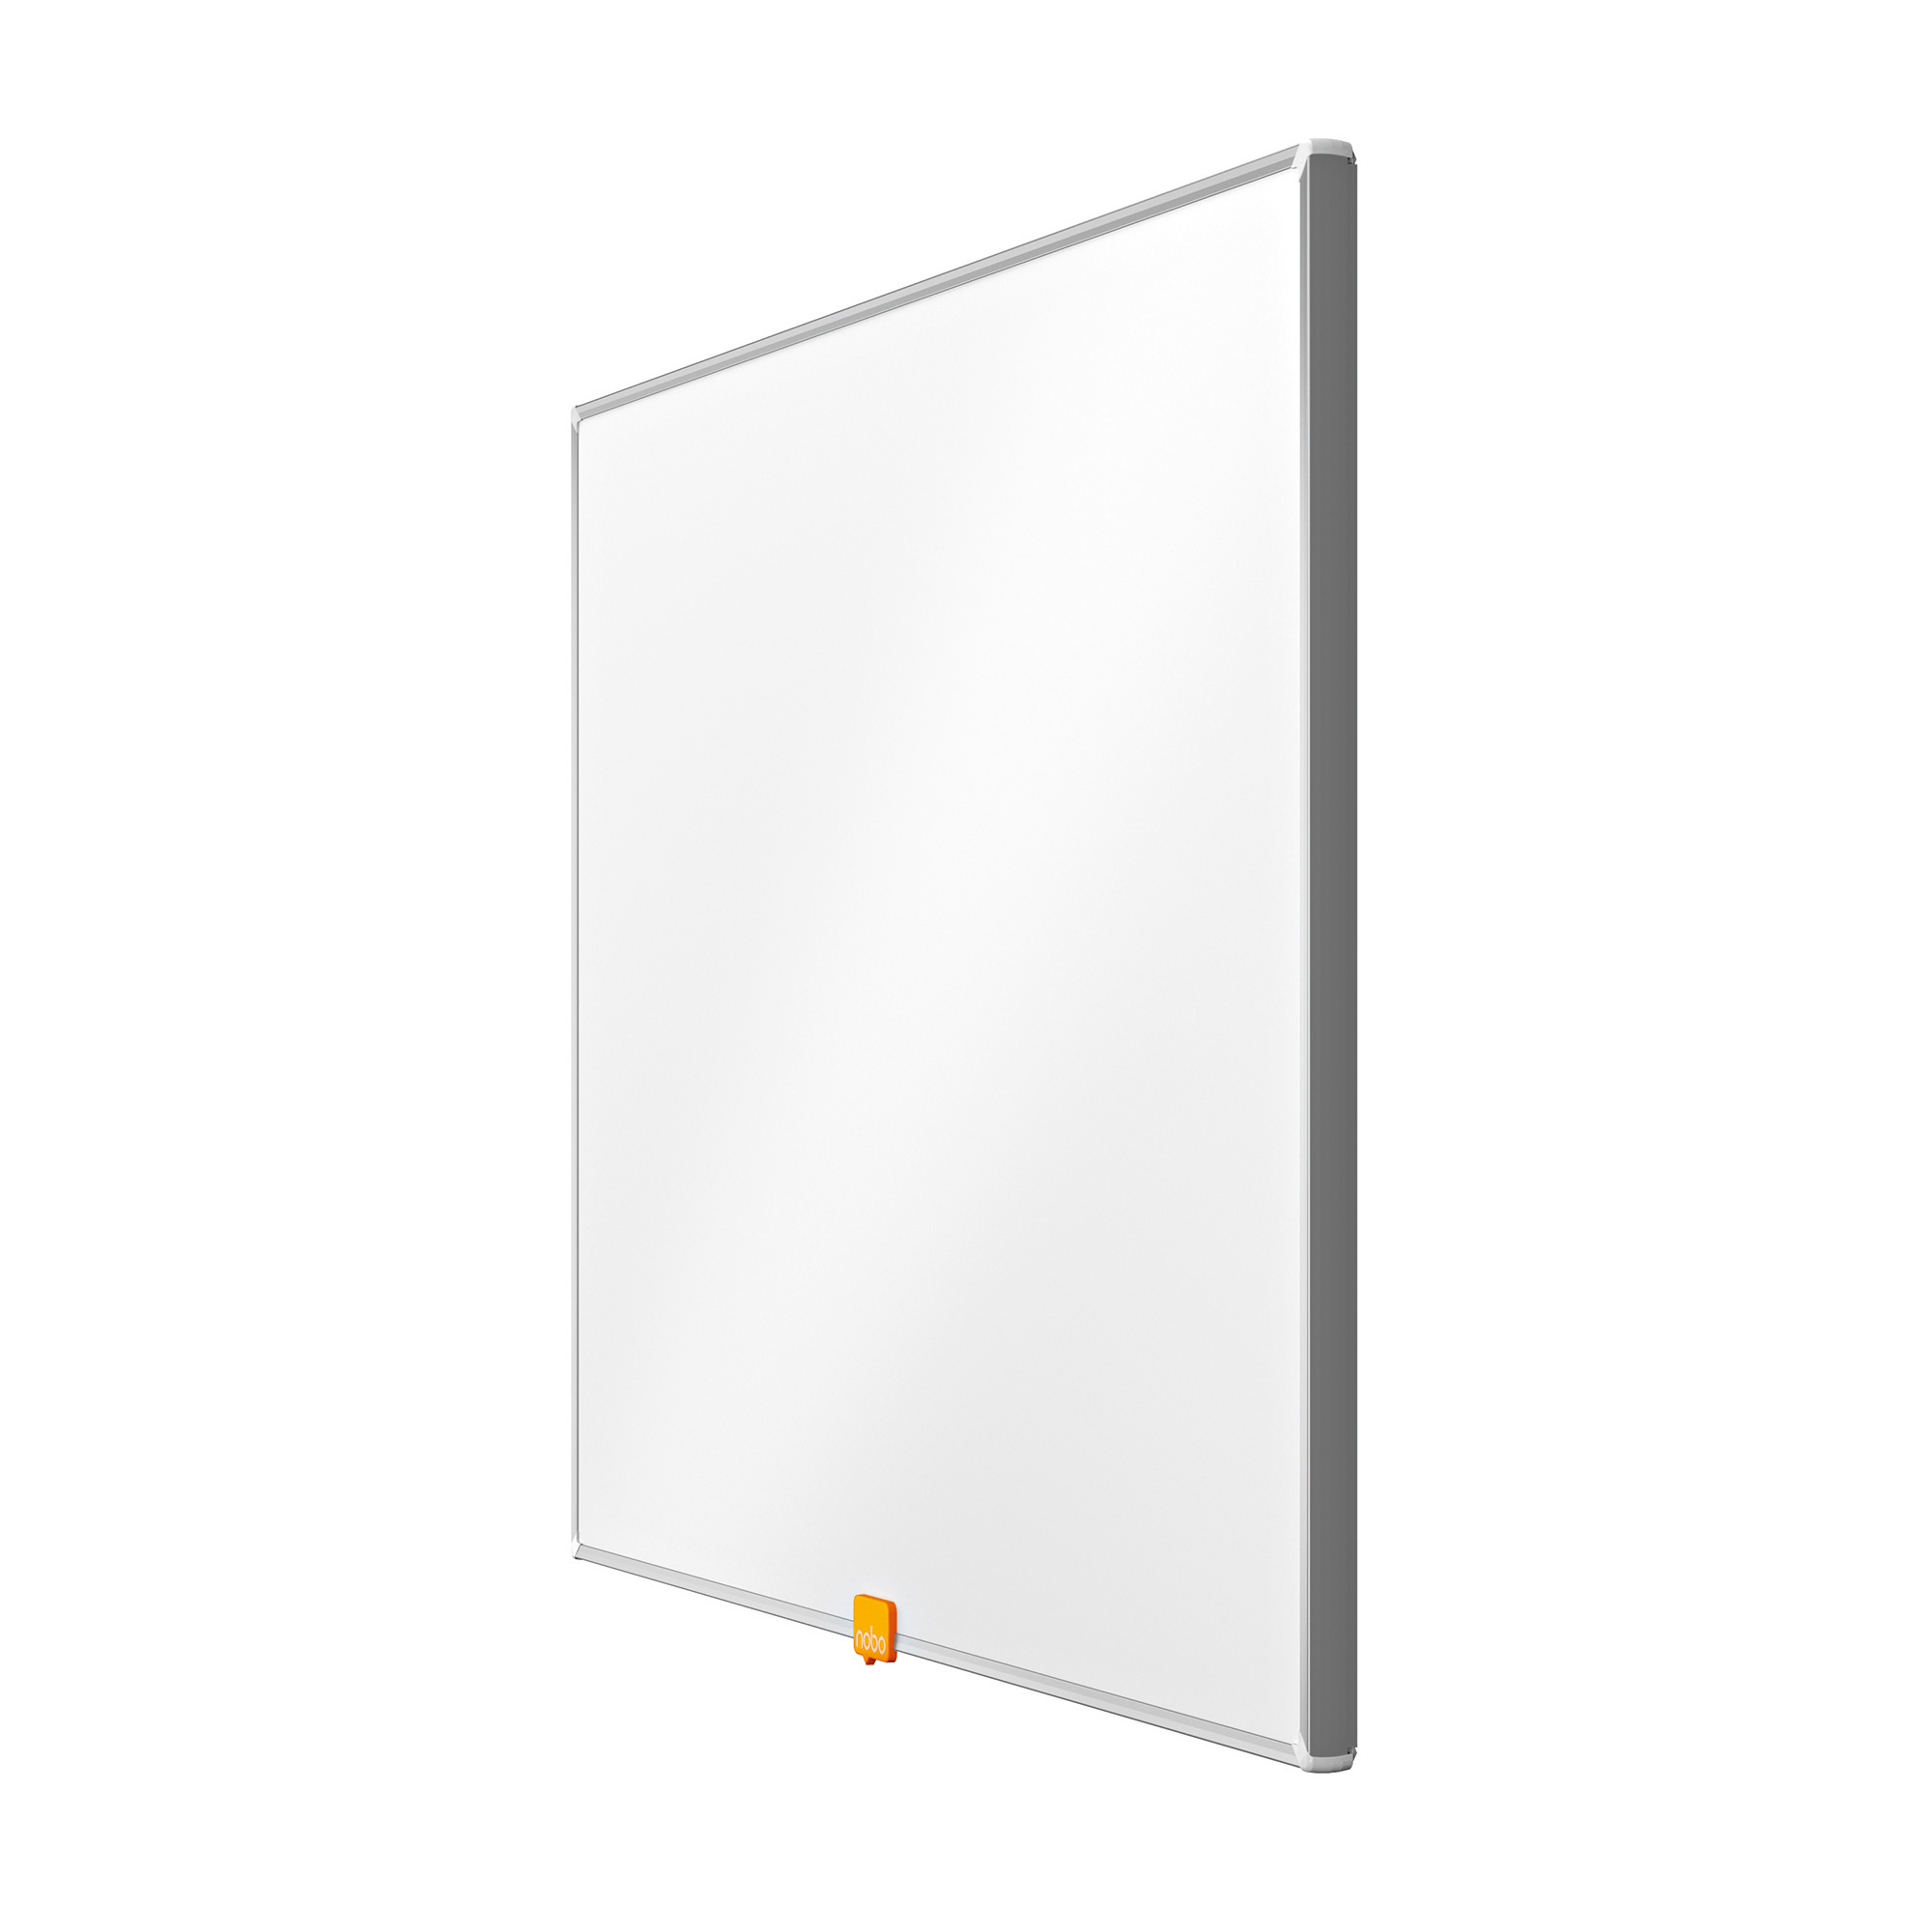 Nobo Classic Nano Drywipe Board Magnetic Steel with Fixings Slim Frame W600xH450mm White Ref 1902641